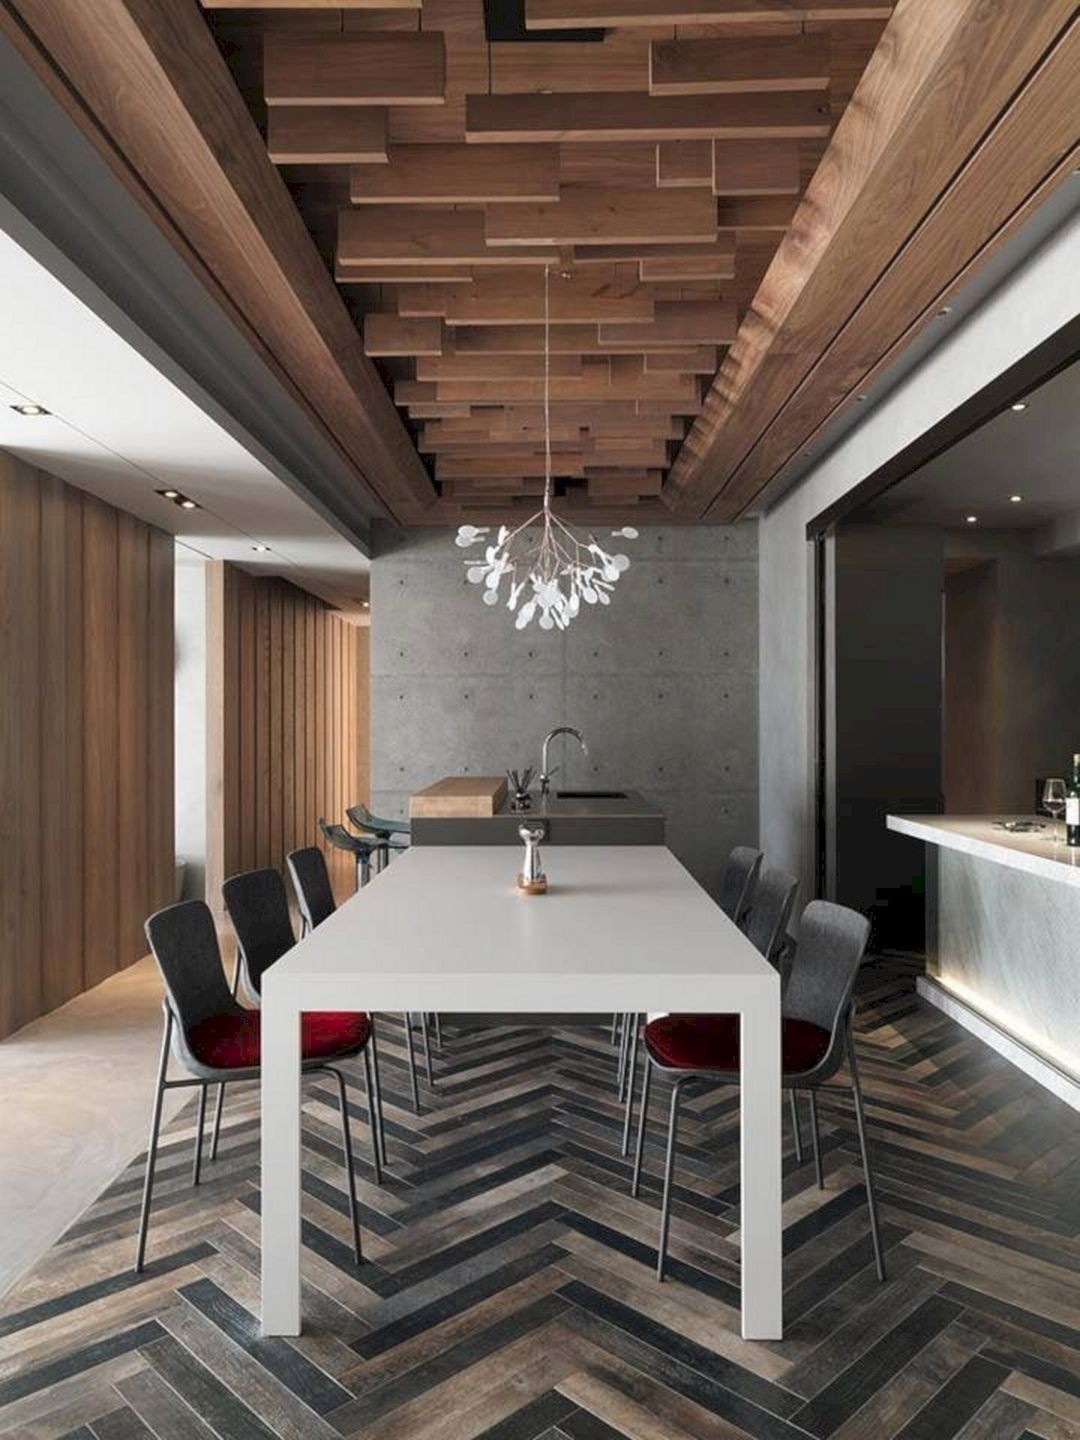 15 Modern Creative Ceiling Ideas For Best Home Inspiration Home